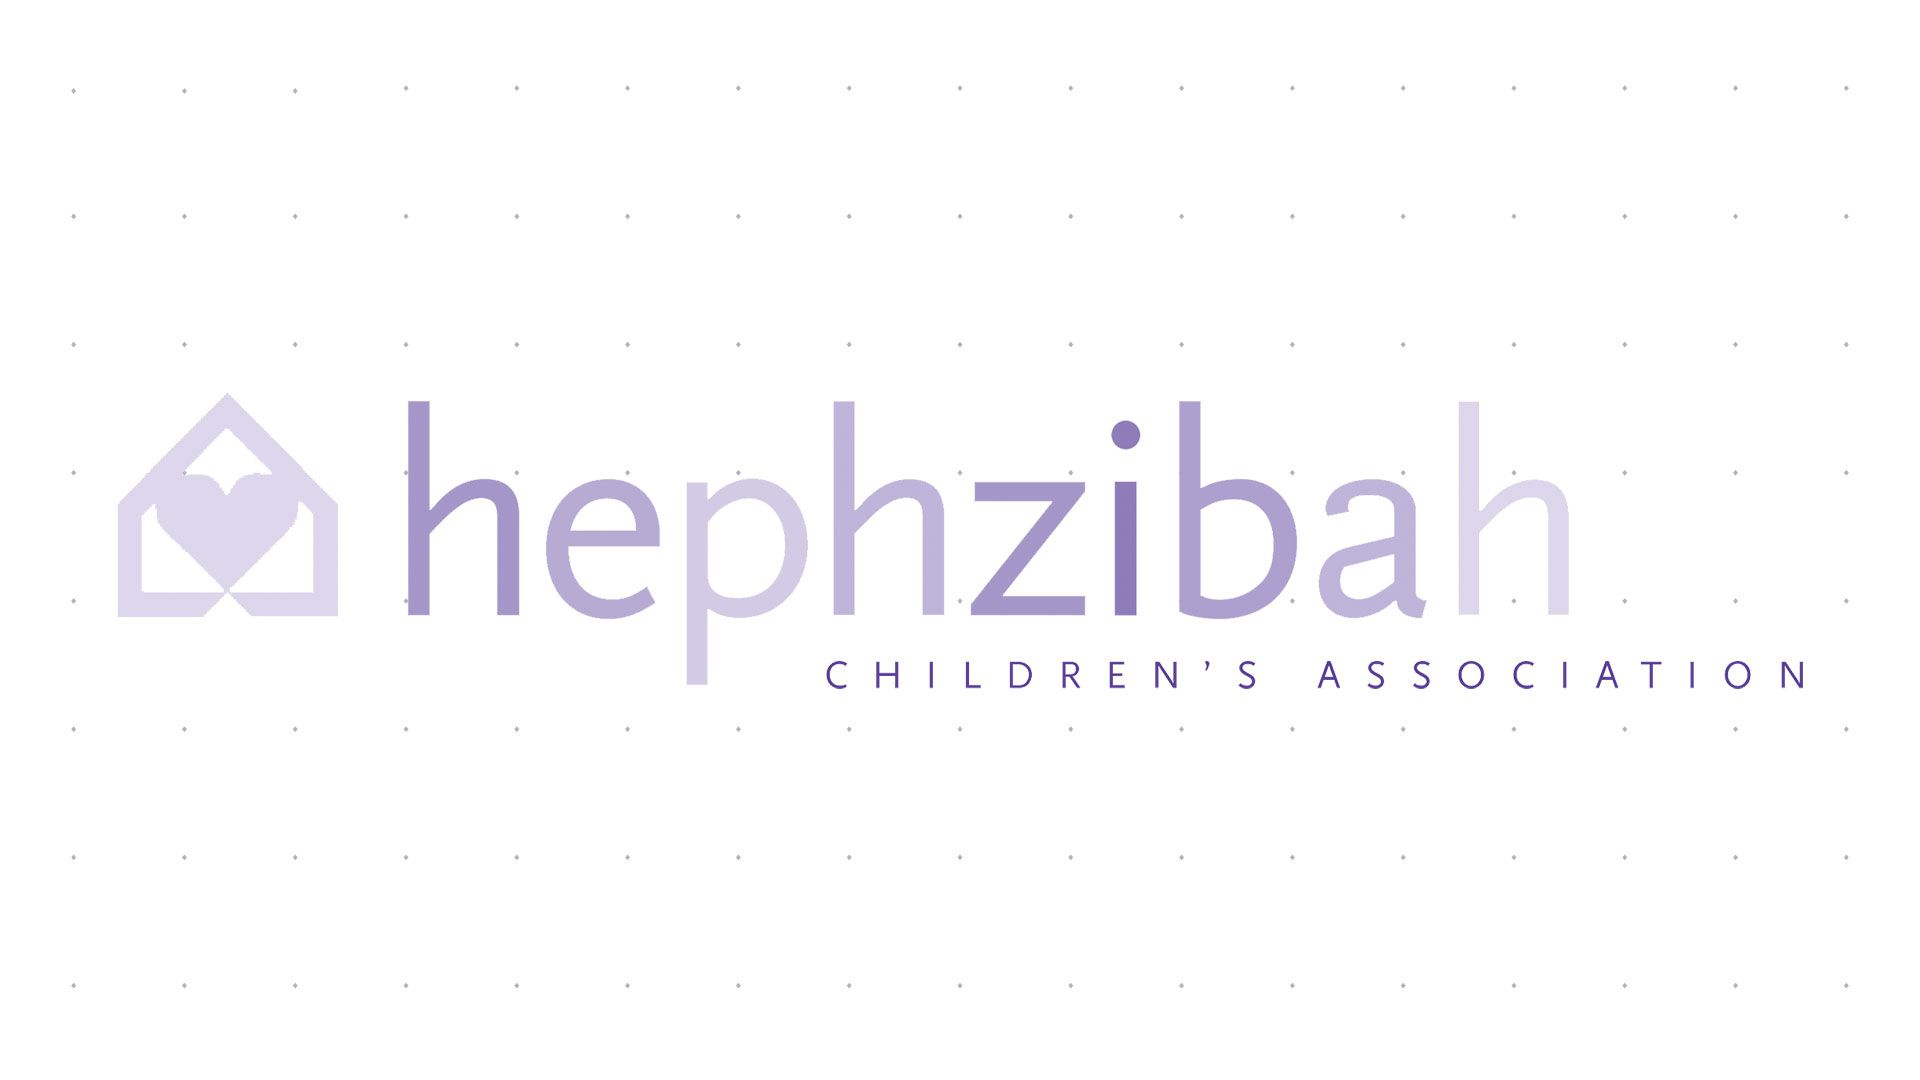 Hephzibah Children's Association of Illinois